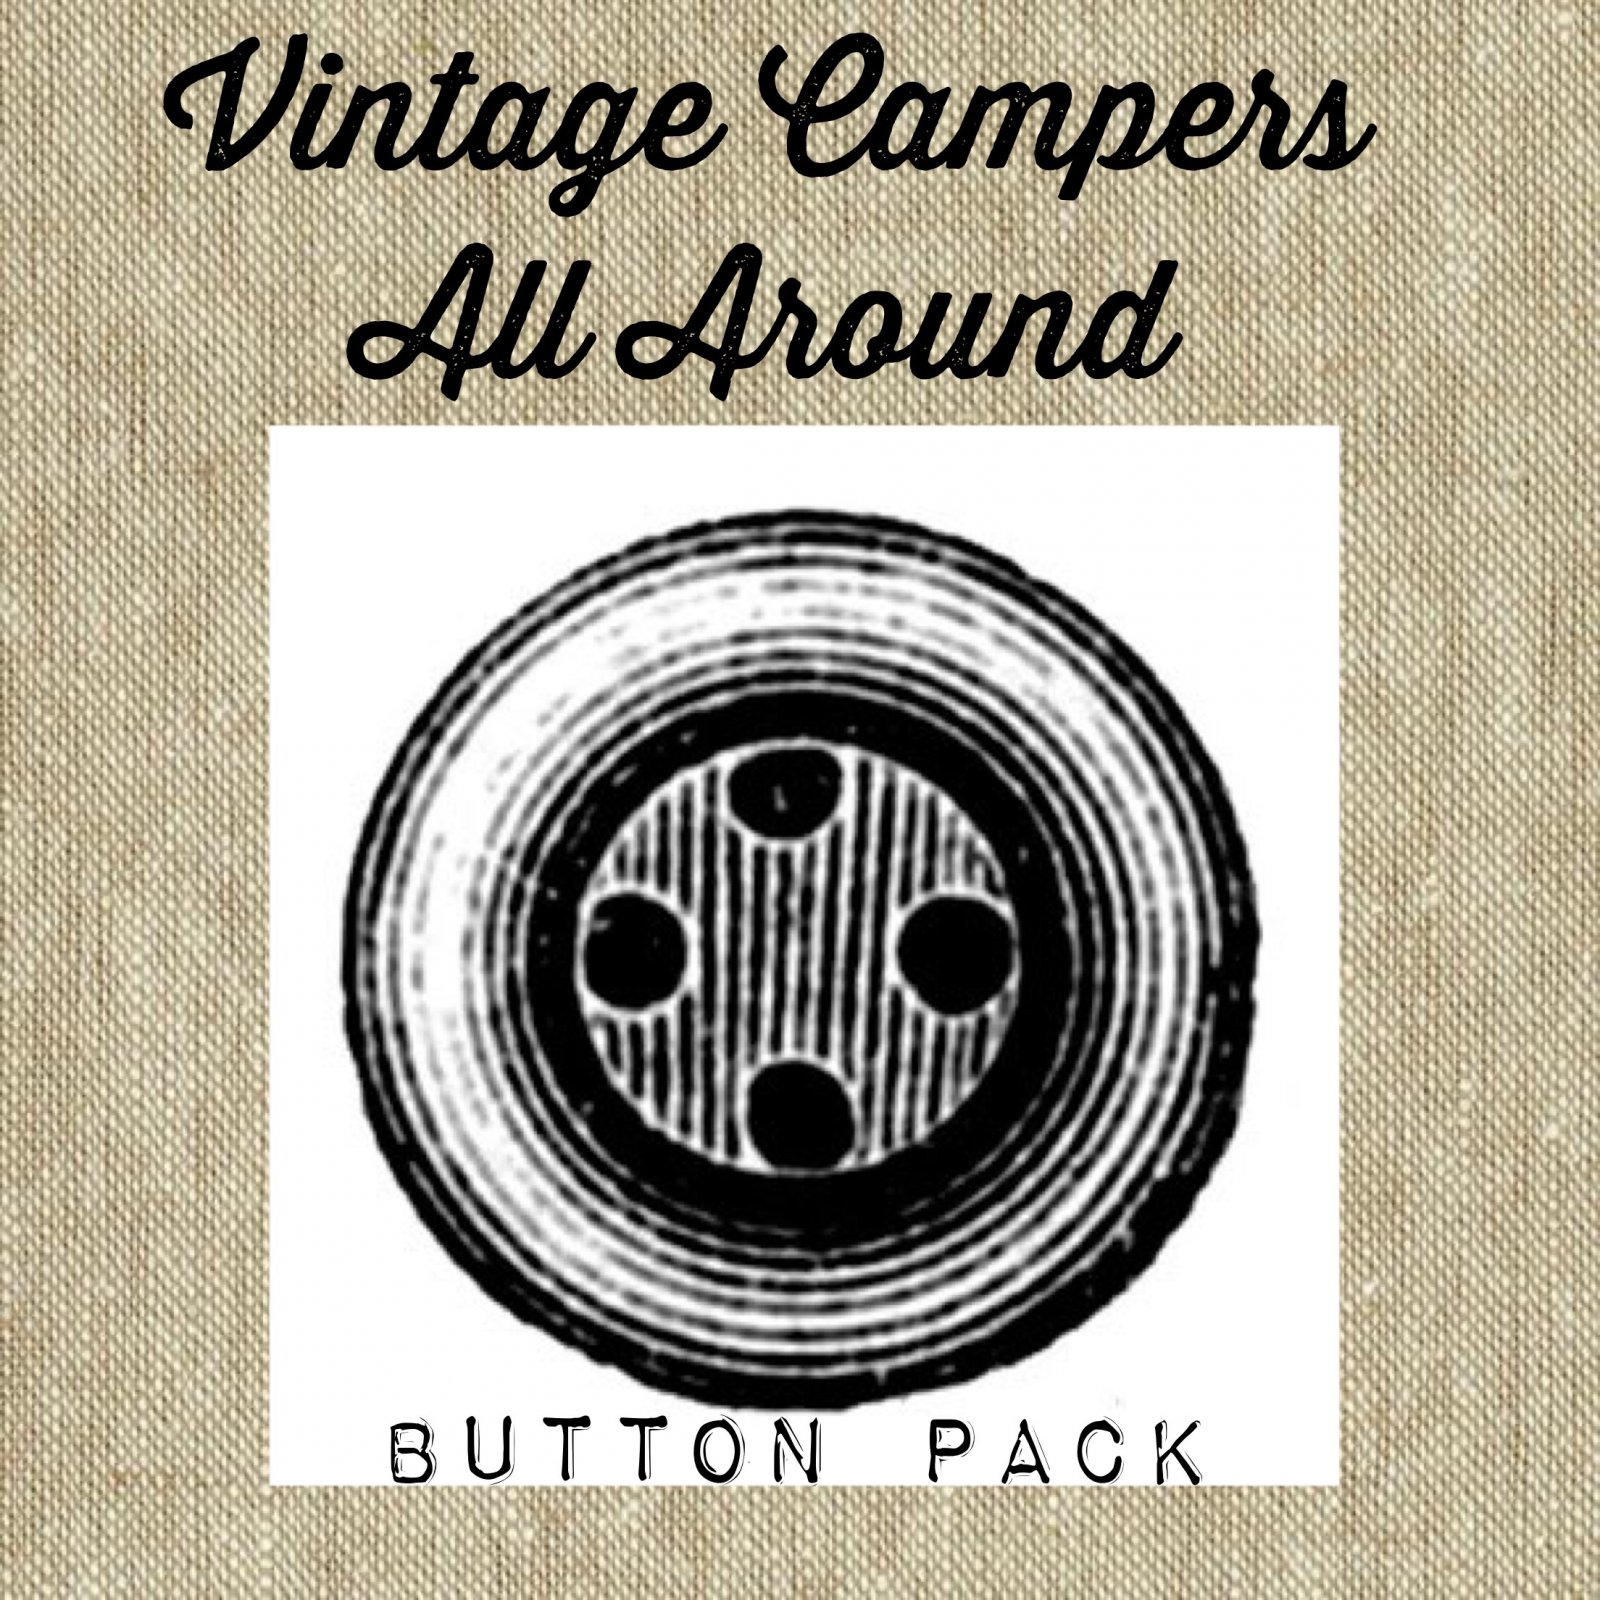 Vintage Campers all Around Button Pack